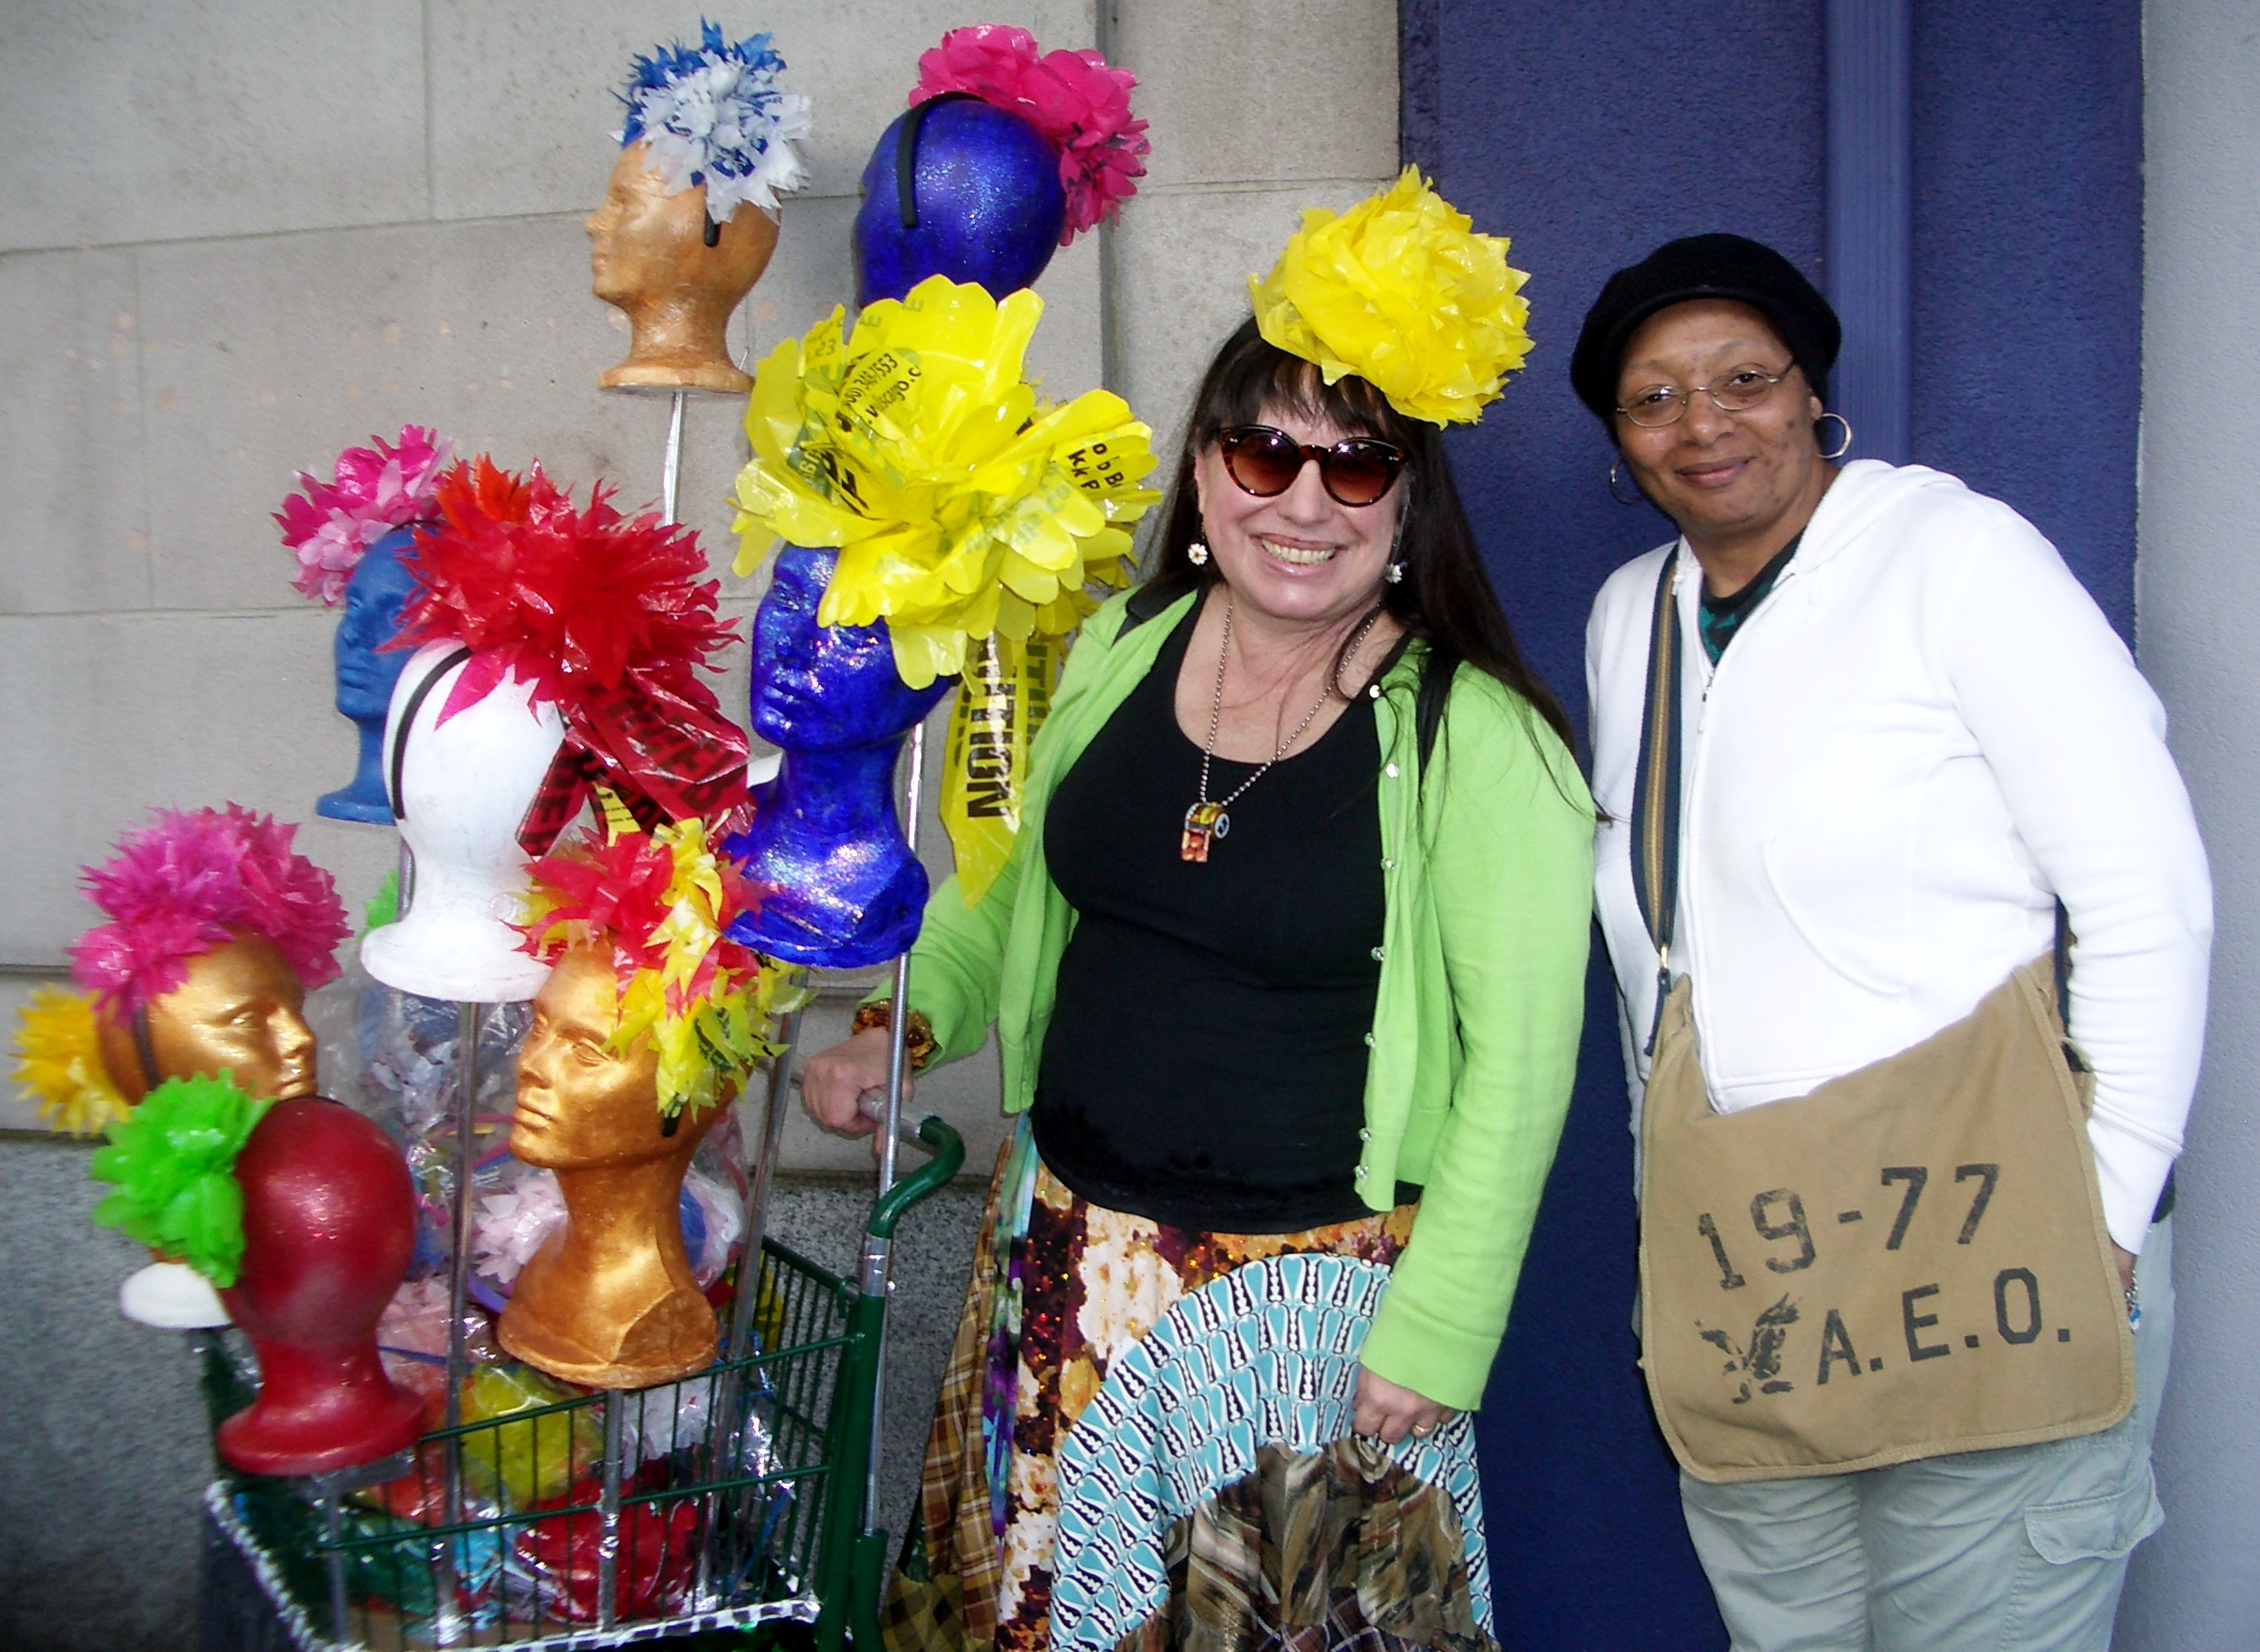 Ruby Re-Usable (w/friend Linda C) and her shopping cart of repurposed plastic bag flower fascinators